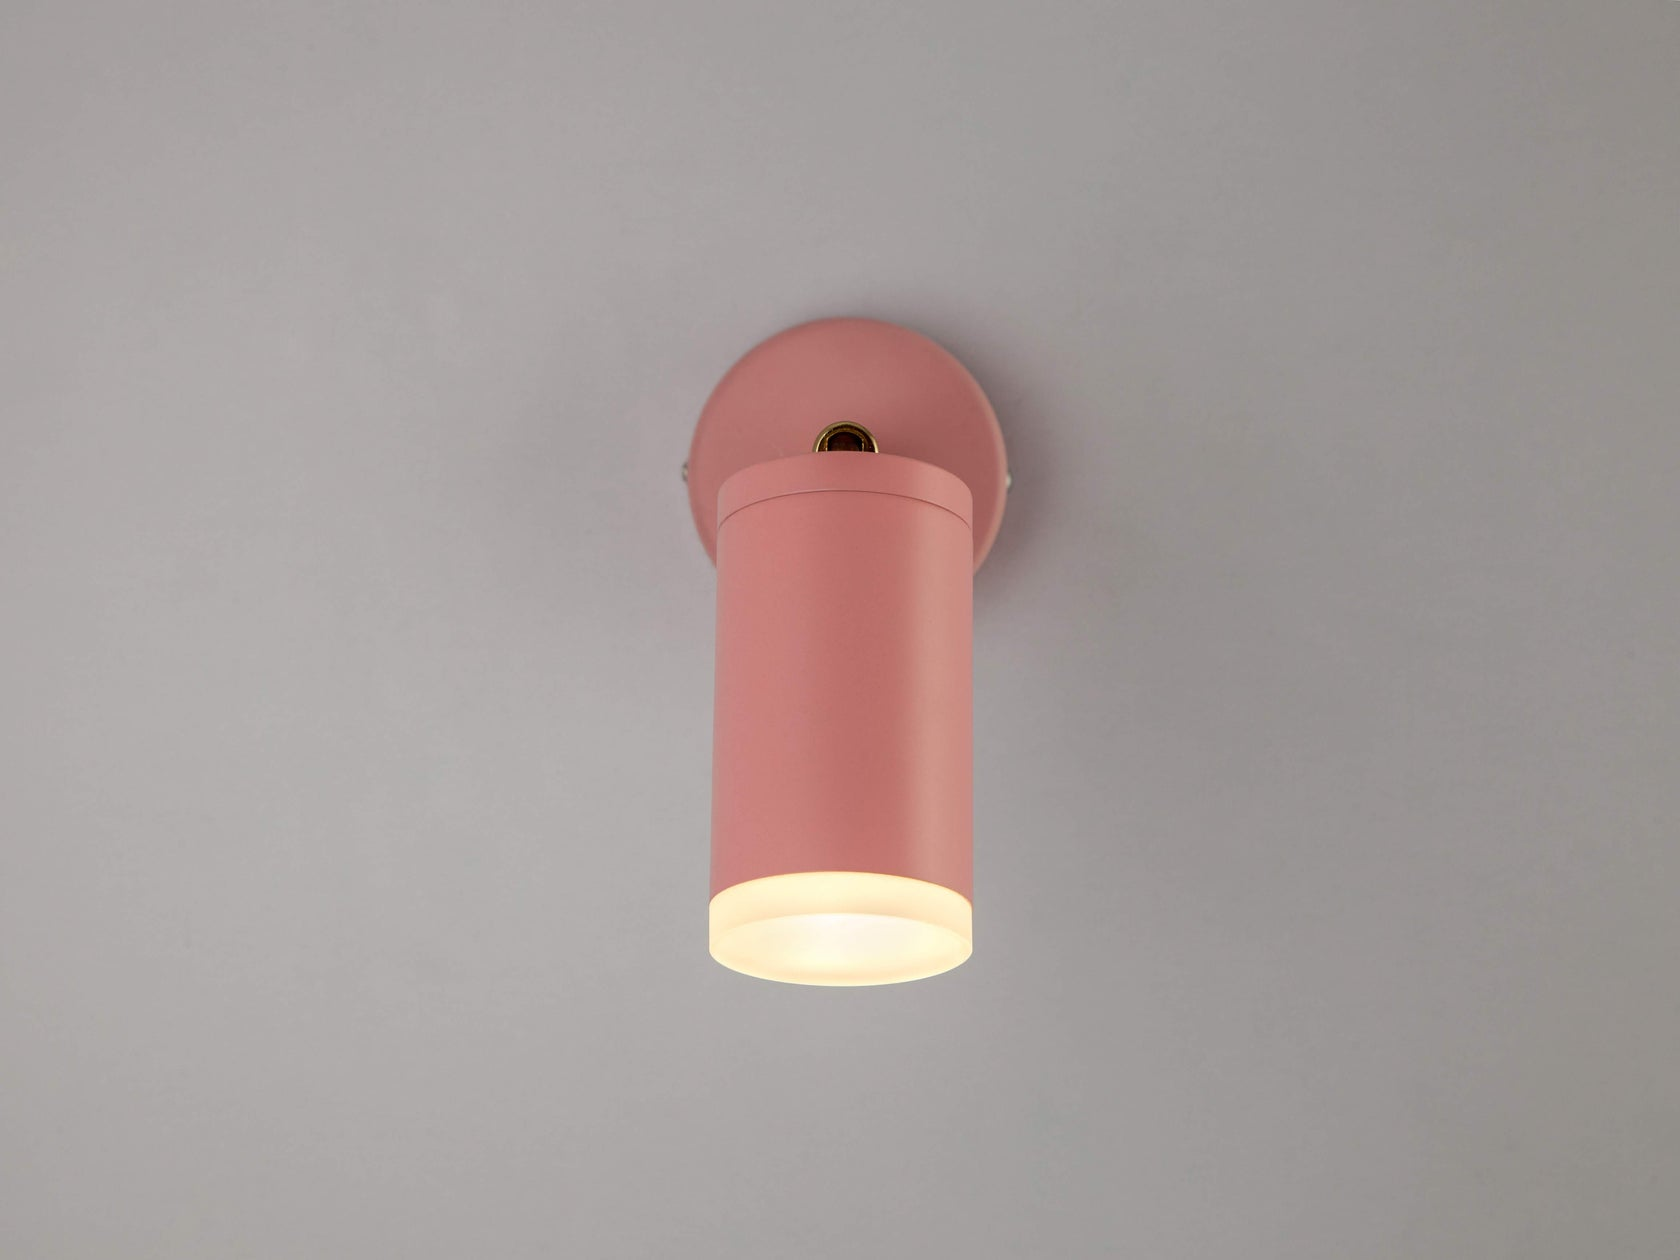 LED task wall light pink | zoom | houseof.com